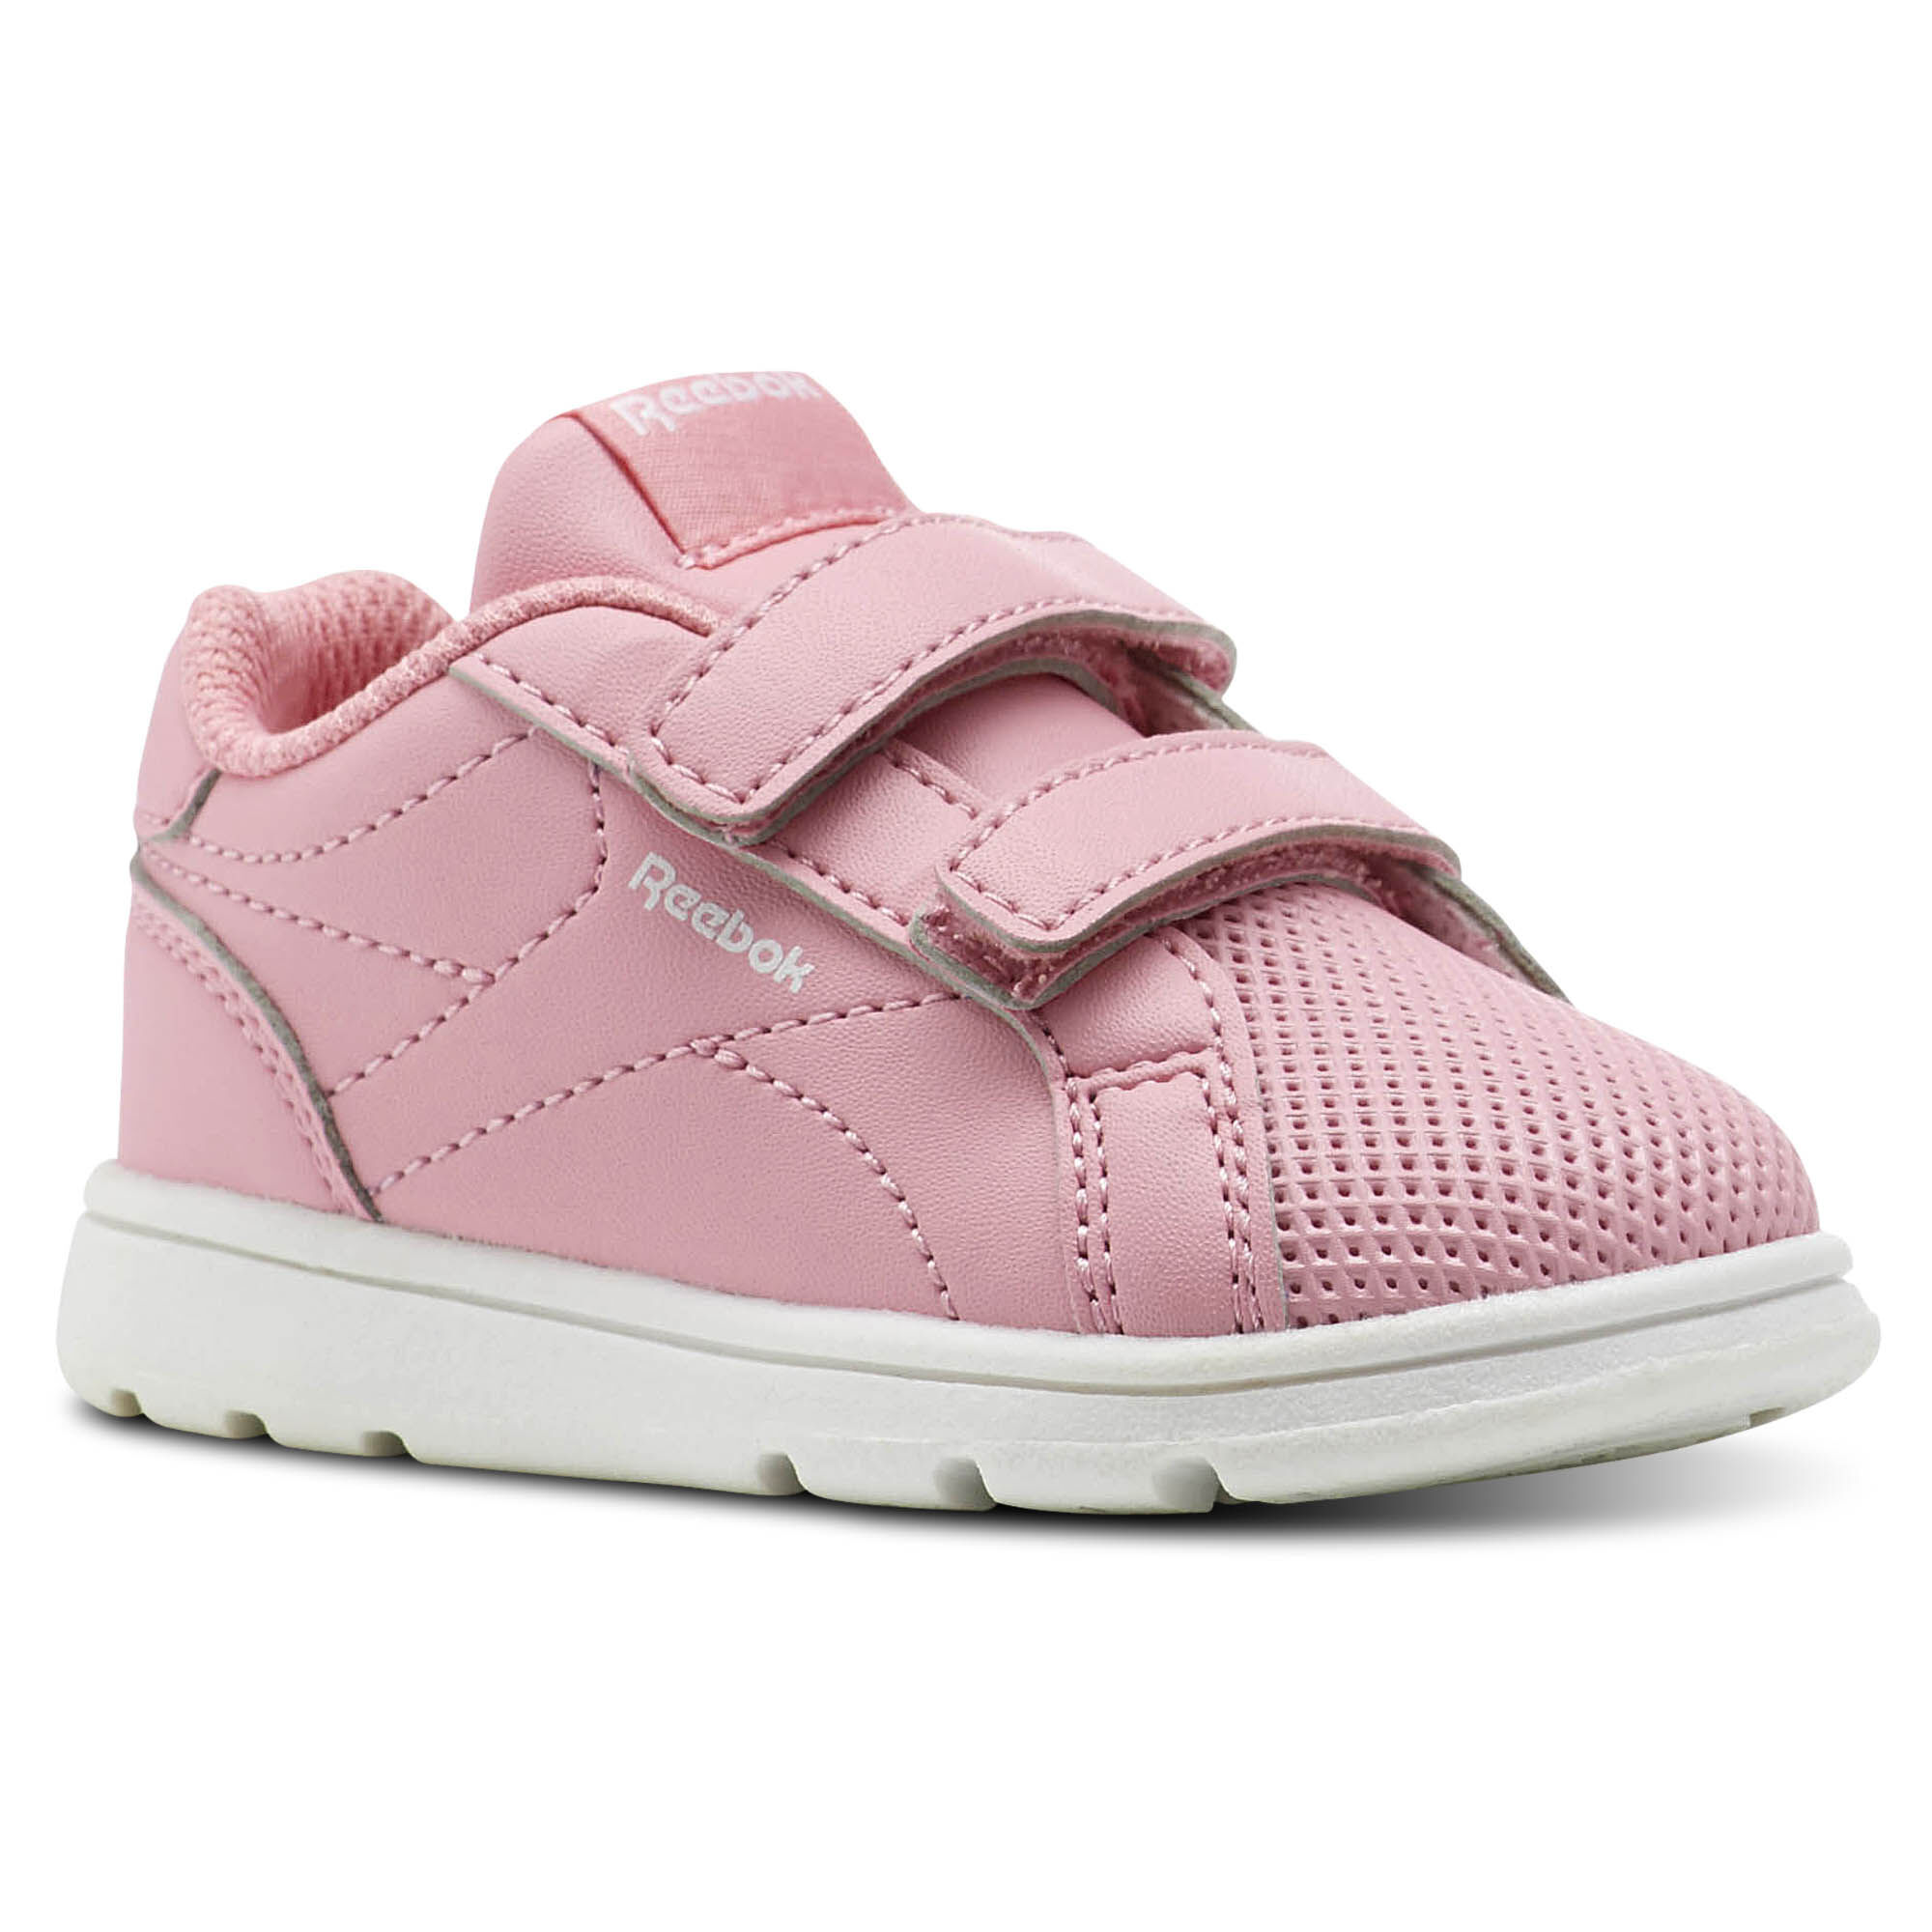 Reebok - Reebok Royal Complete Clean - Infant Toddler Squad Pink/White  CN1584